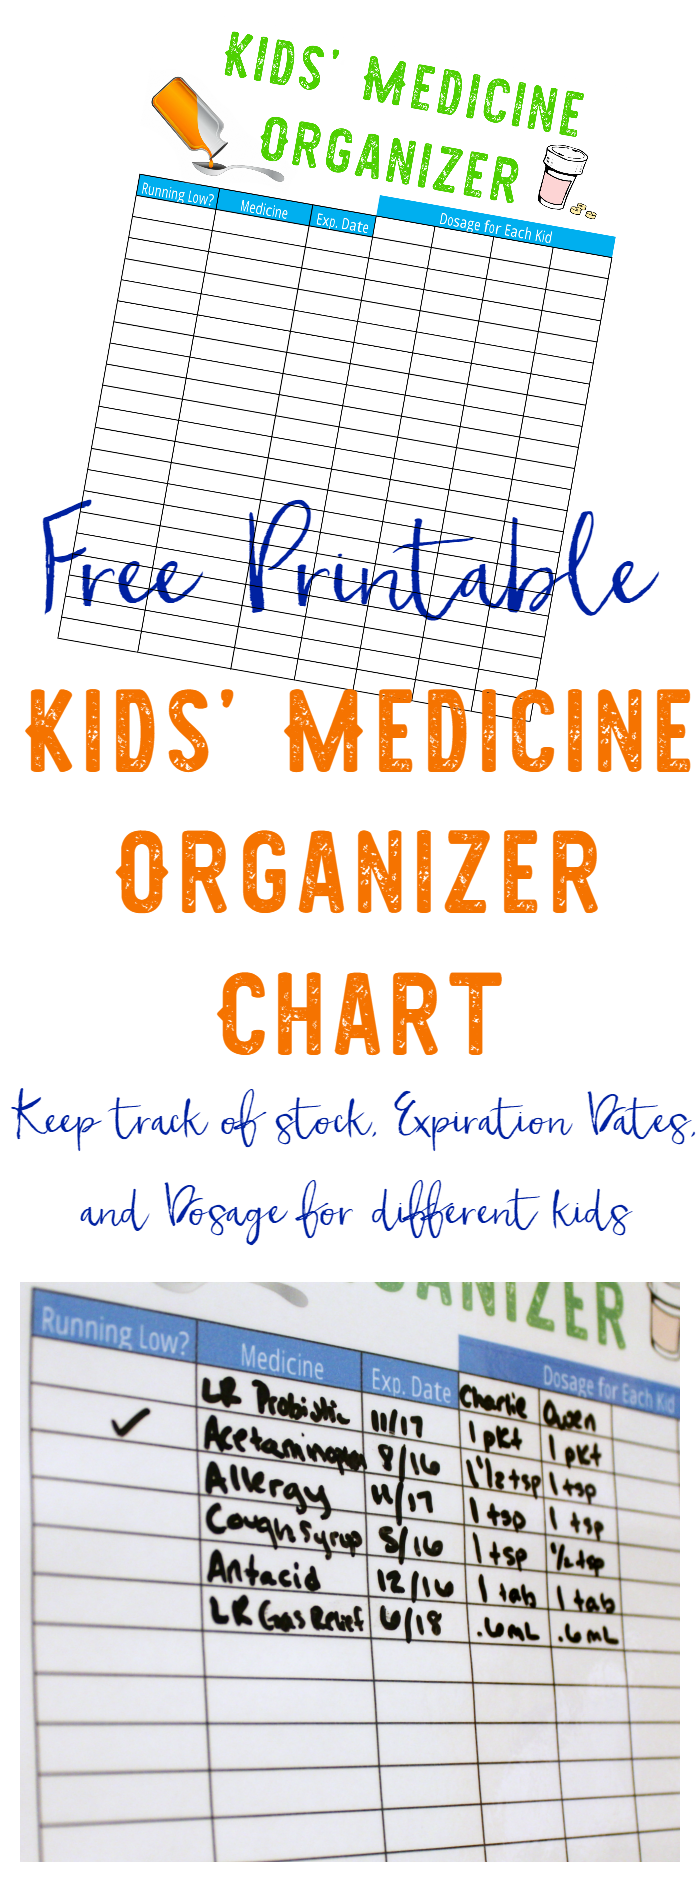 Kids' Medicine Organizer Chart Free Printable - Making our kids feel better is our job as parents! Keep track of stock, Expiration Dates, and Dosage for different kids with our free printable medicine organizer chart.